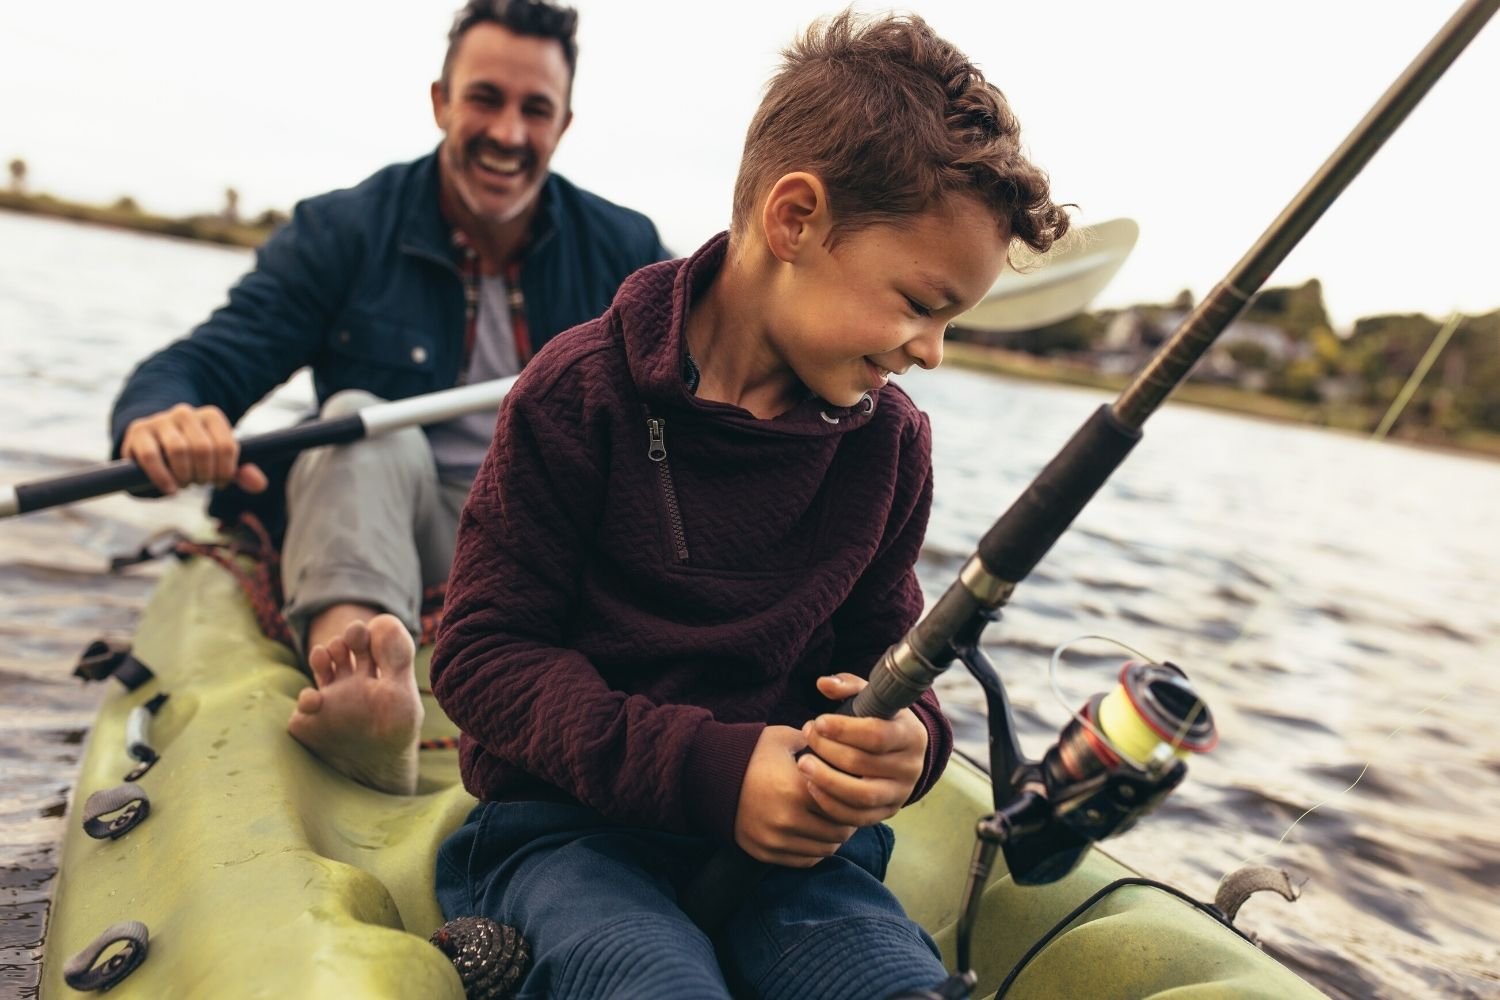 Canoe vs. Kayak Fishing: What Are the Differences?